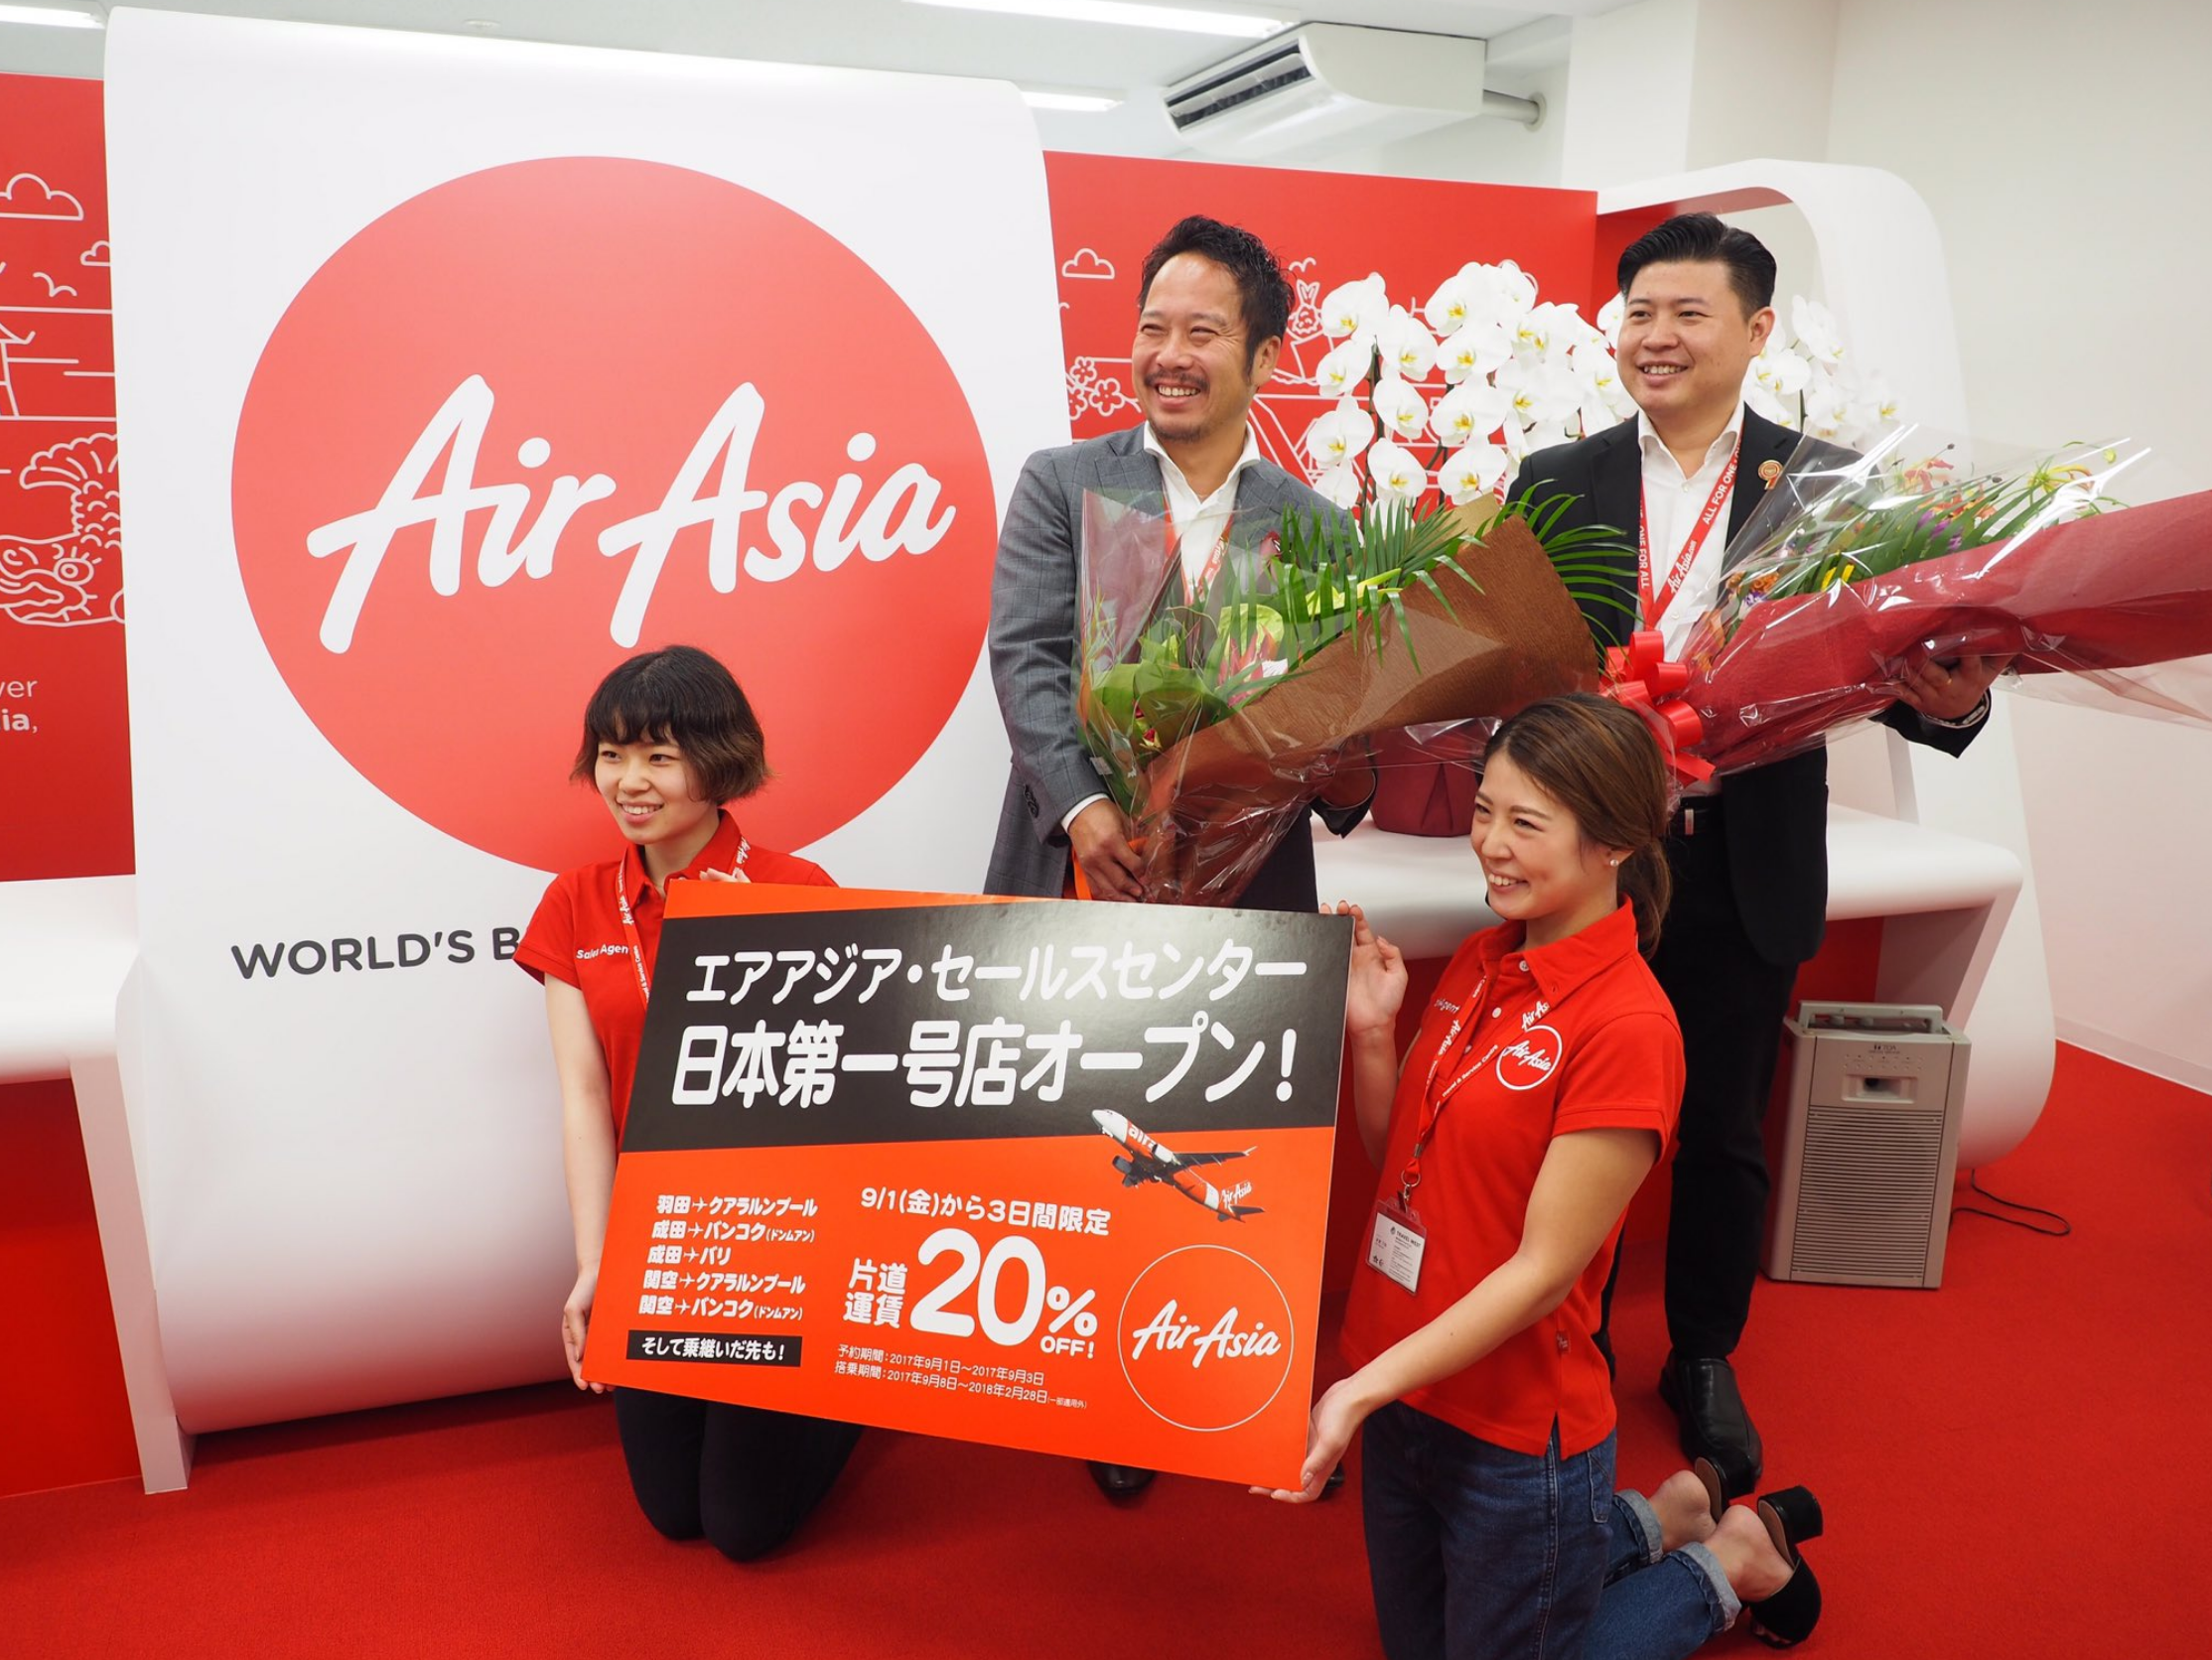 airasiacnter.png